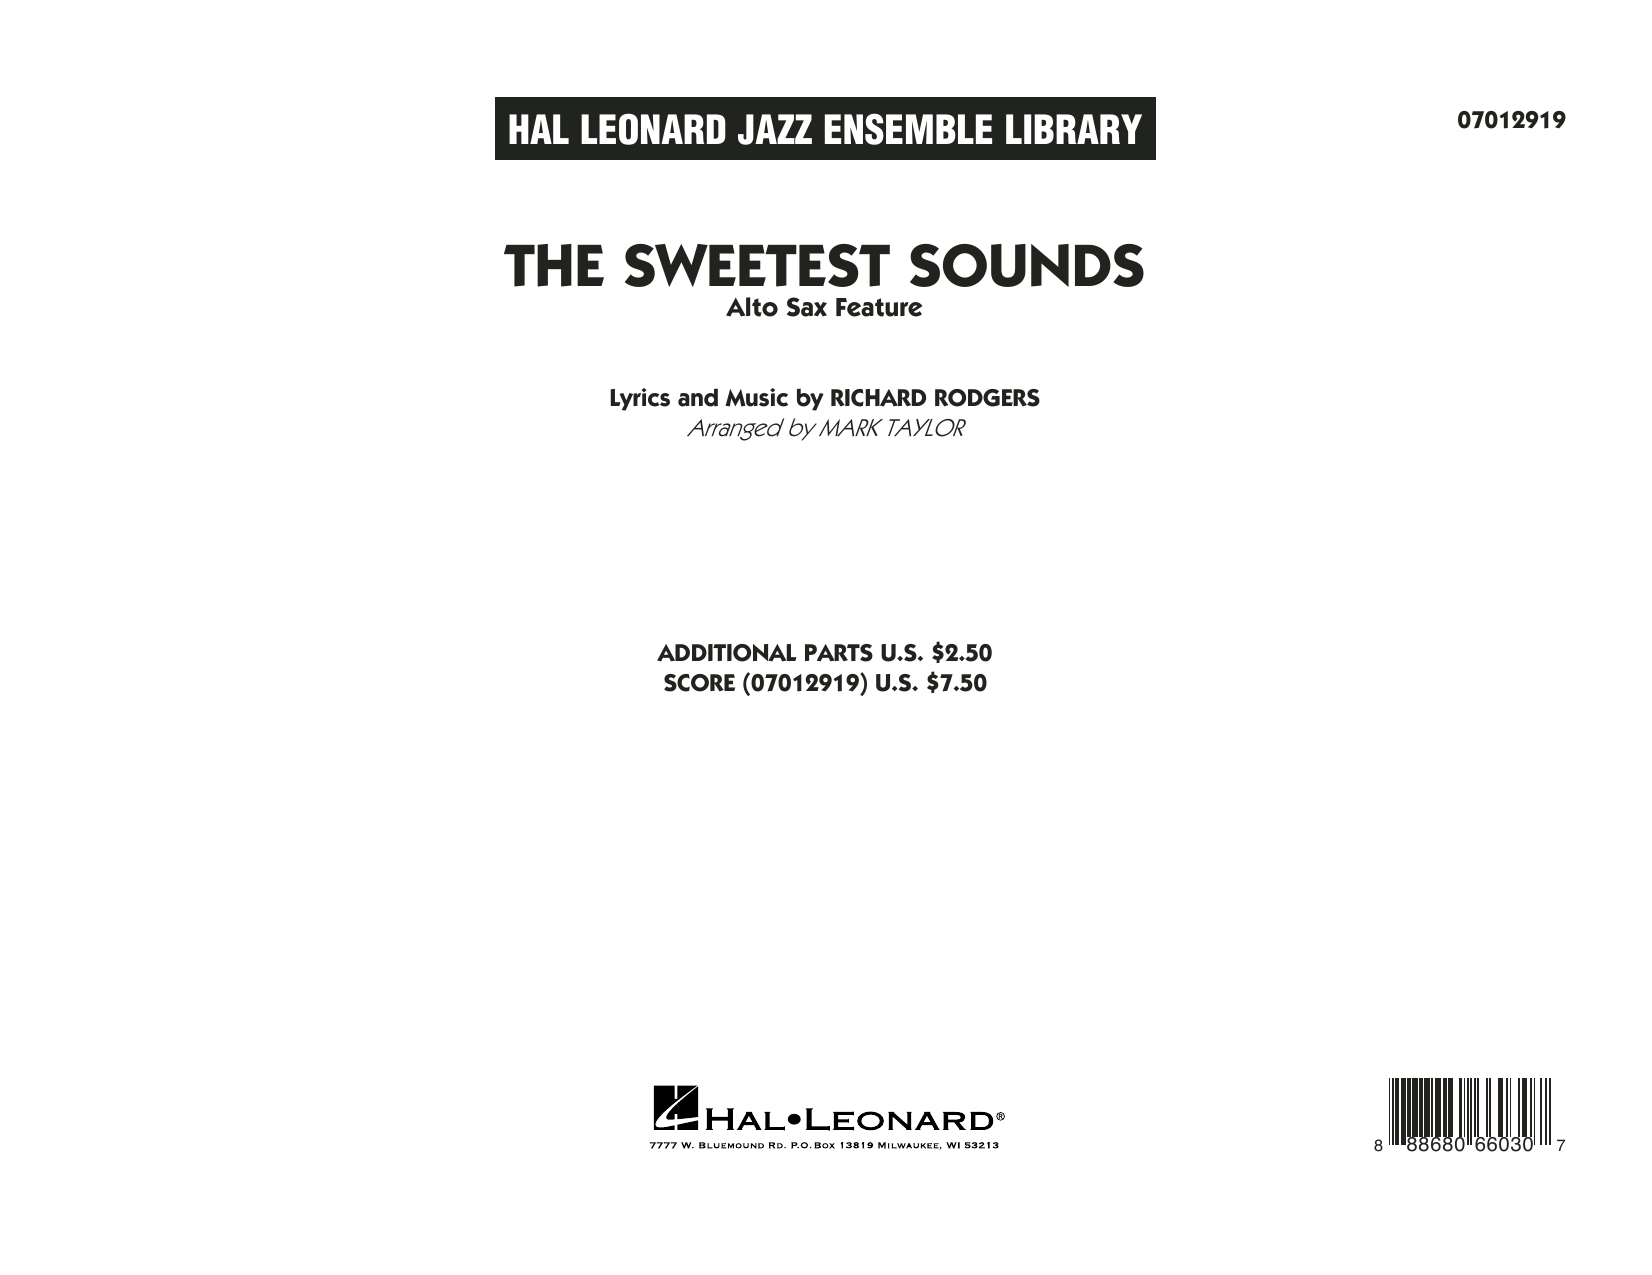 The Sweetest Sounds (Alto Sax Feature) - Conductor Score (Full Score) Sheet Music